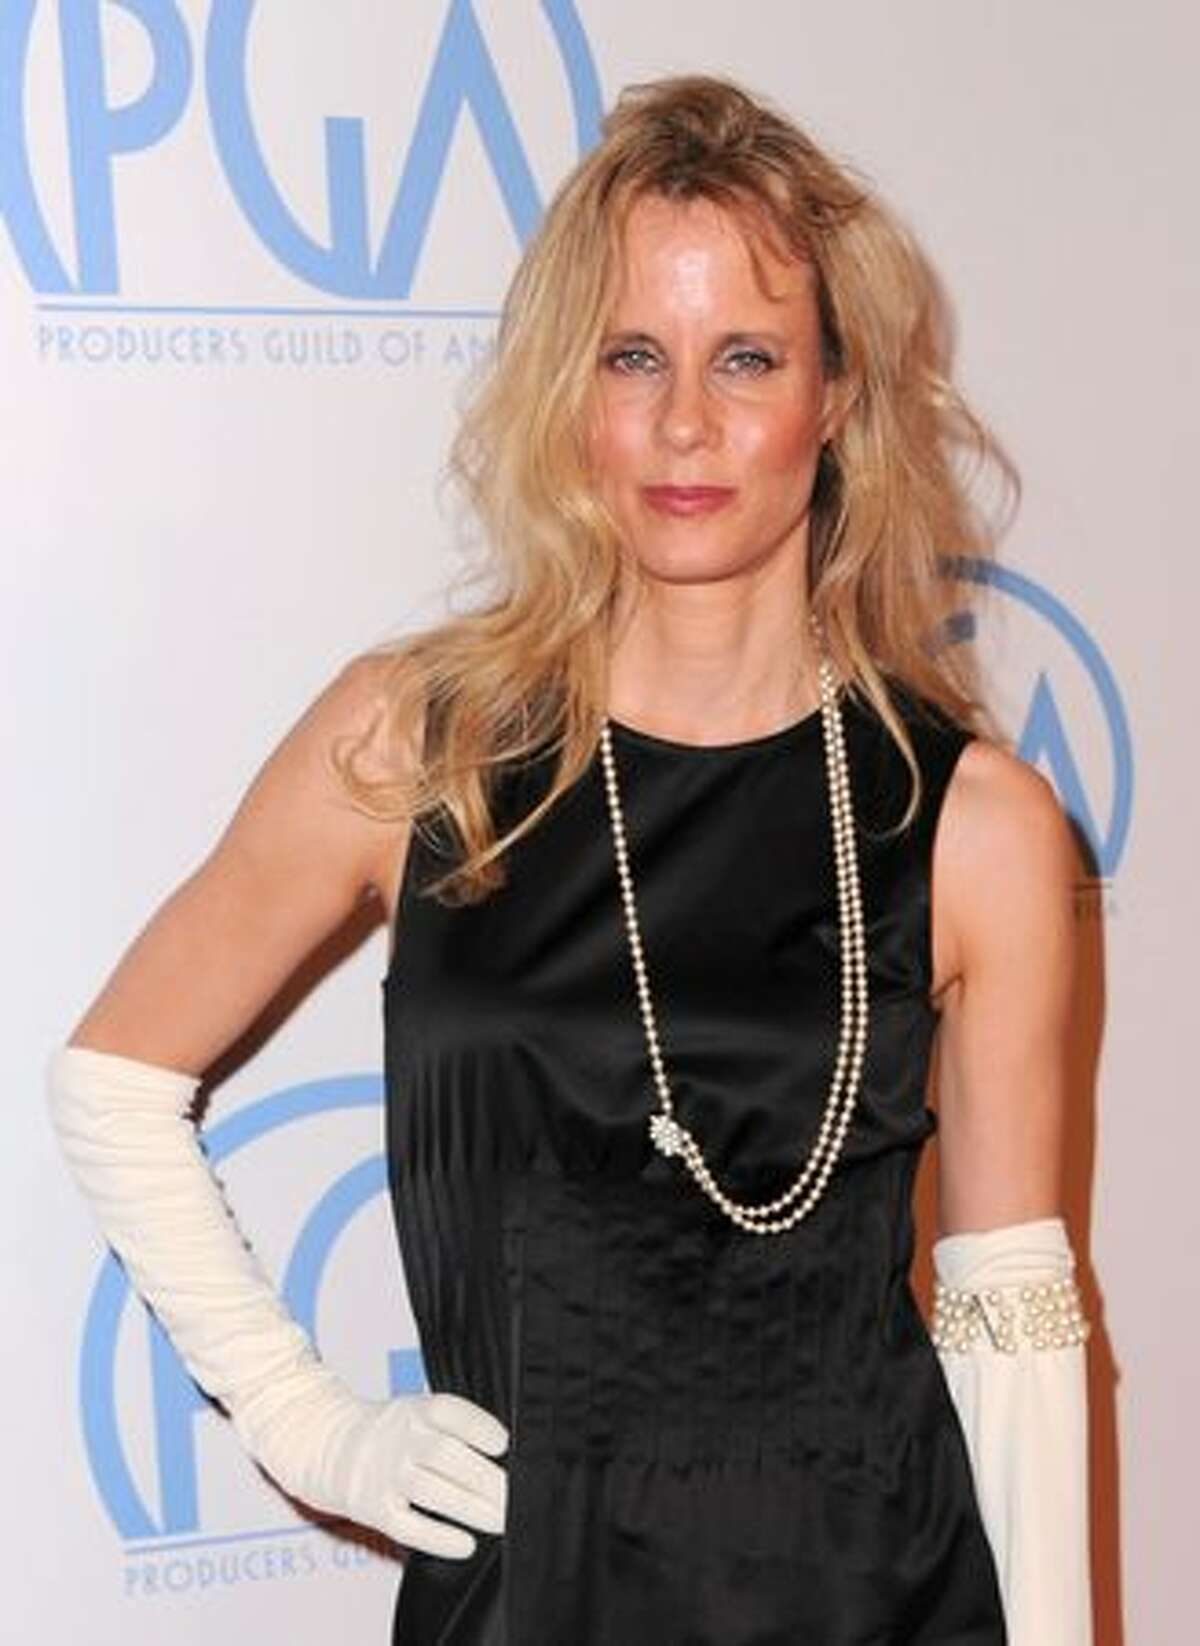 """Actress Lori Singer (""""Footloose"""") arrives at the 22nd annual Producers Guild Awards at The Beverly Hilton hotel in Beverly Hills, Calif., on Saturday, Jan. 22, 2011."""